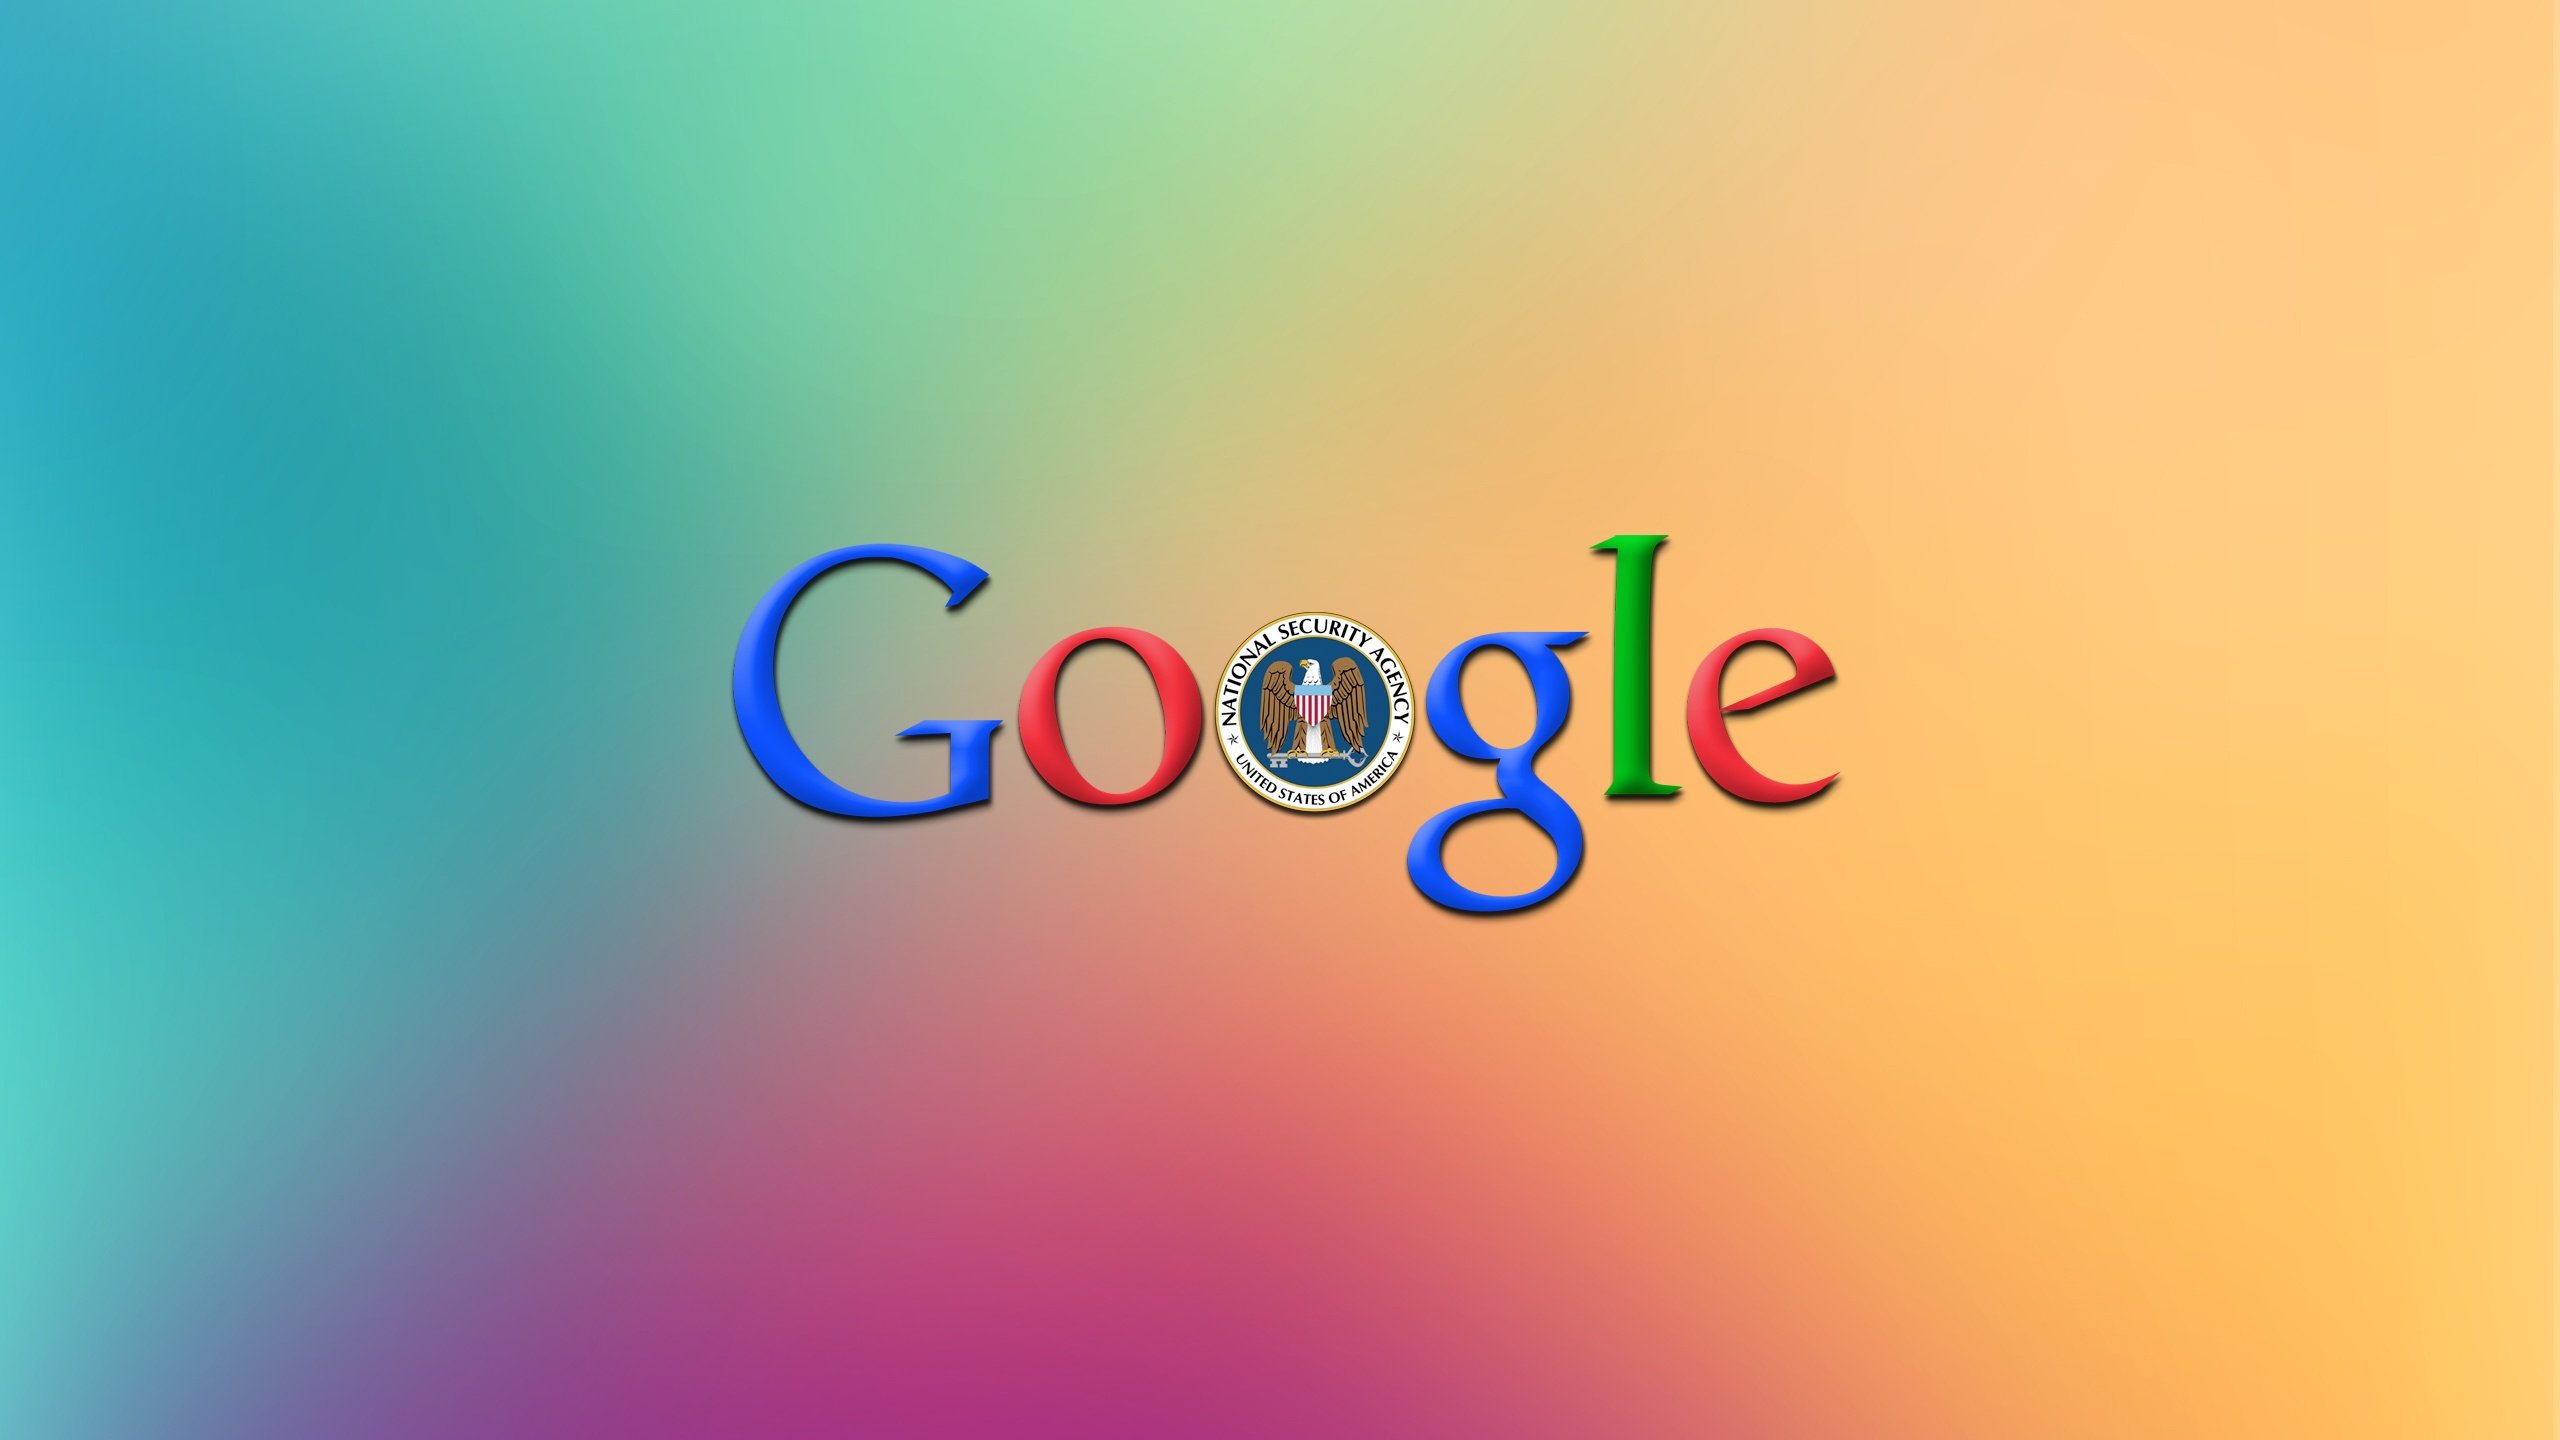 google wallpaper background 2560x1440 2560x1440